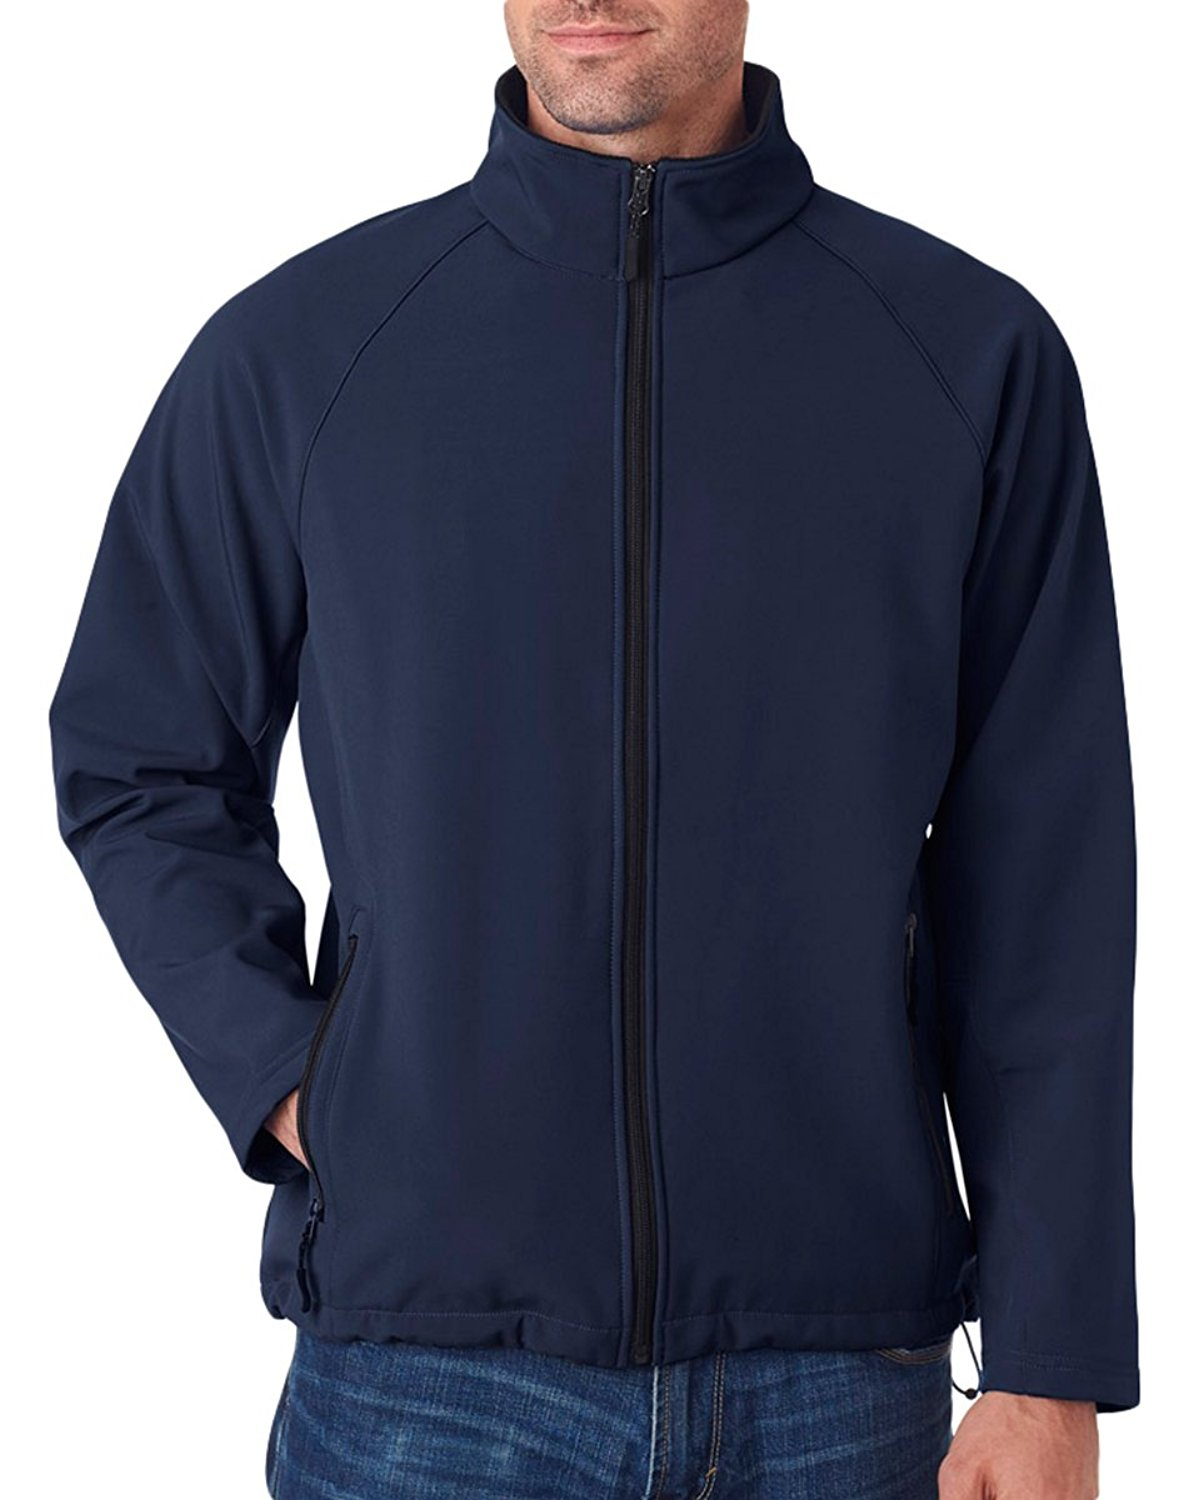 UltraClub Men's Wind Resistant Soft Shell Zipper Jacket, Medium, Navy